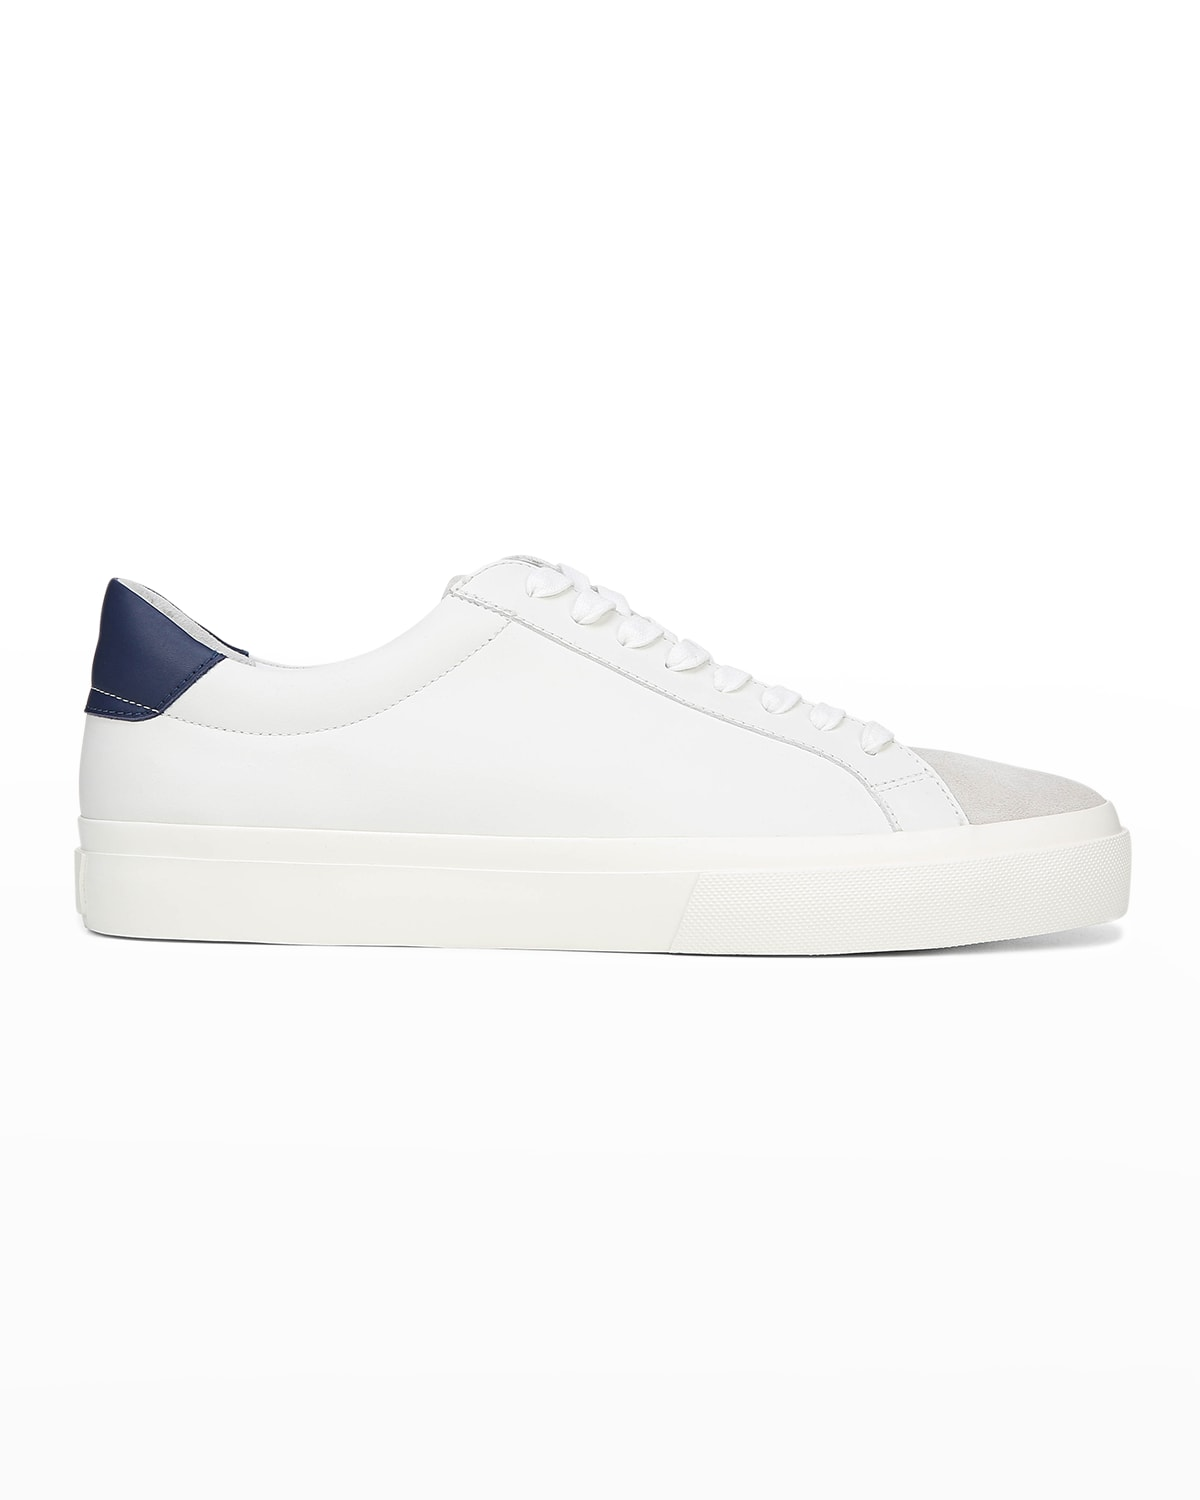 Men's Fulton Mix-Leather Low-Top Sneakers